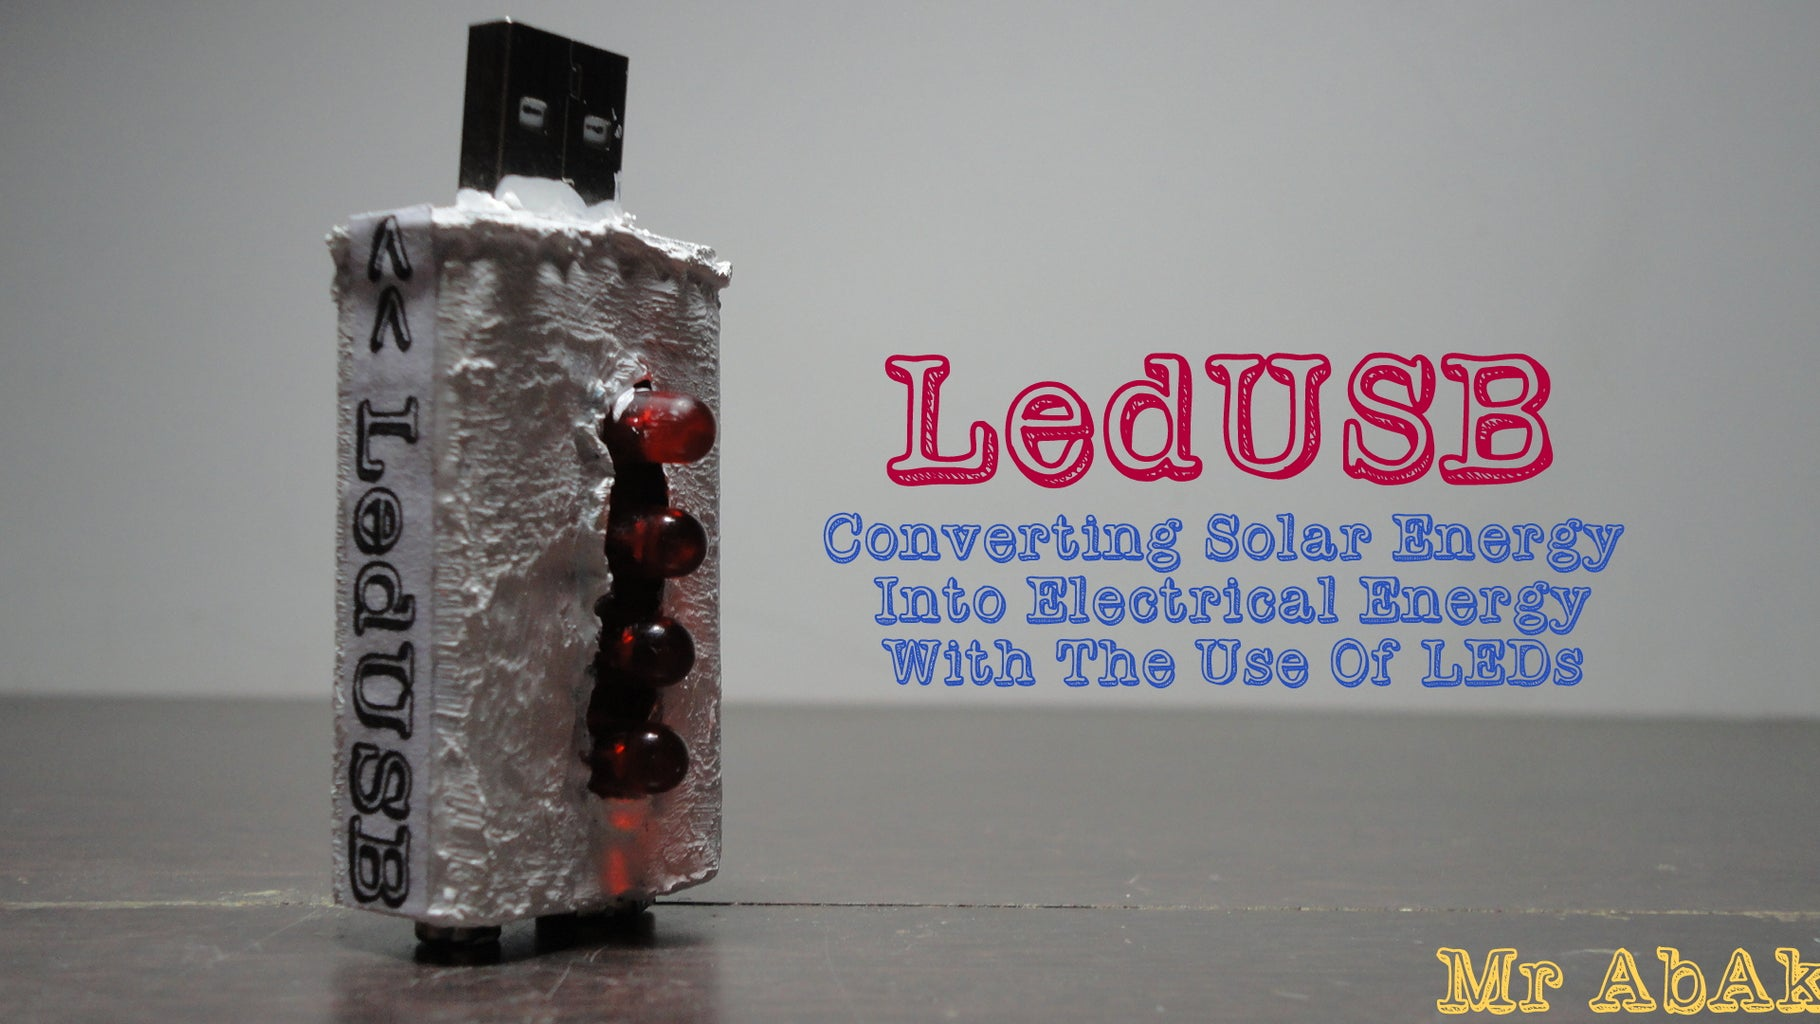 LedUSB : Converting Solar Energy Into Electrical Energy With the Use of LEDs